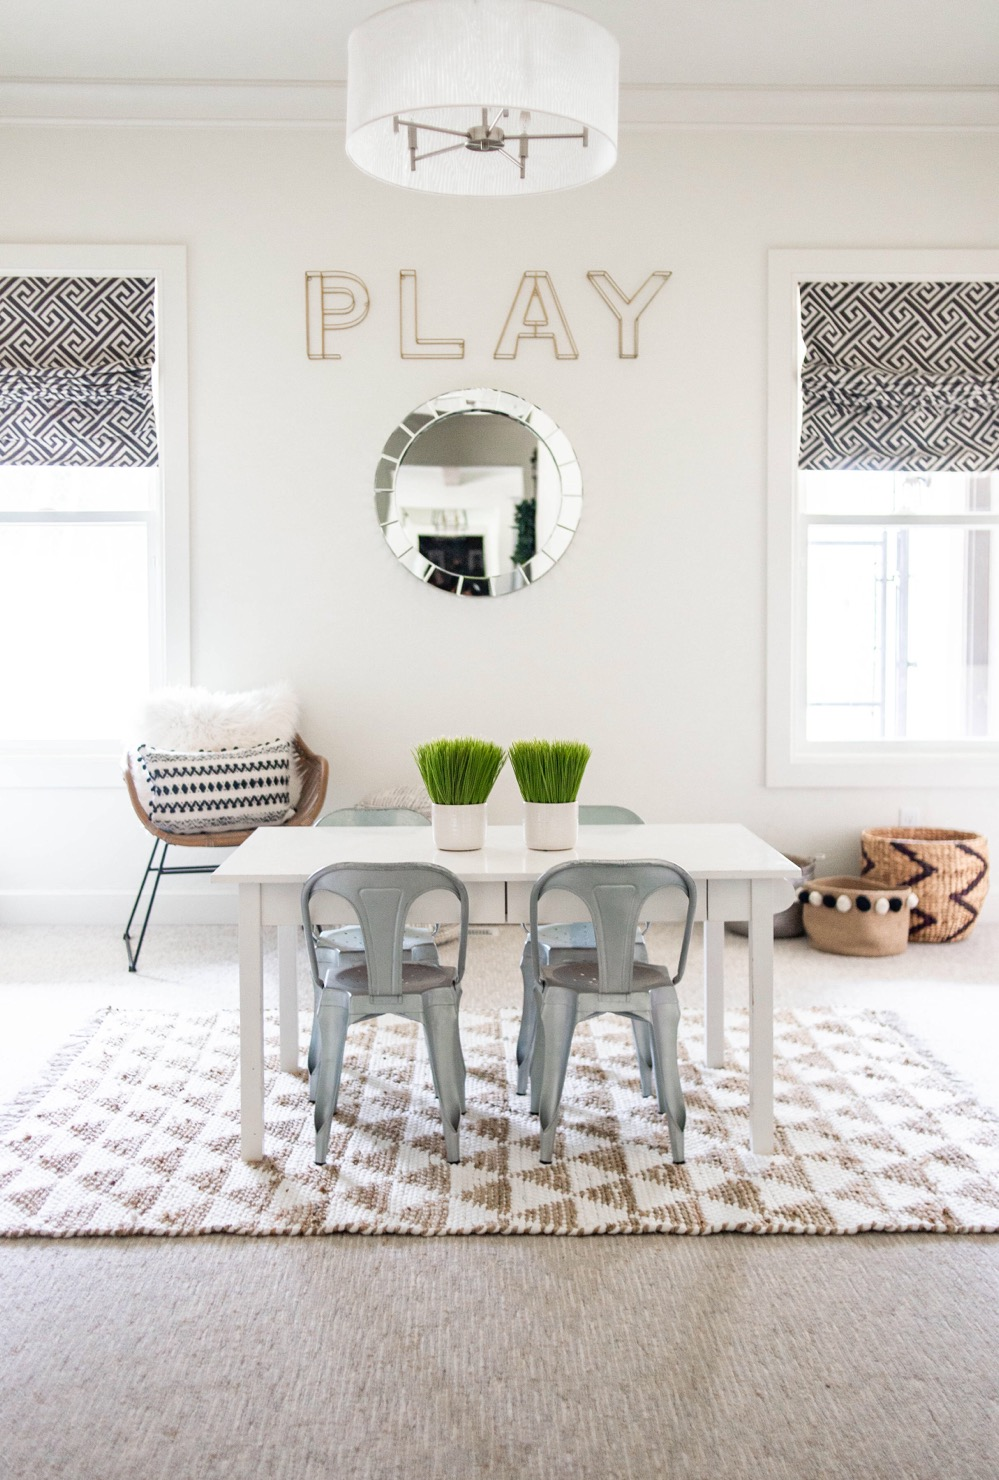 Awesome Playroom Decorating Ideas for Kids | Curls and Cashmere